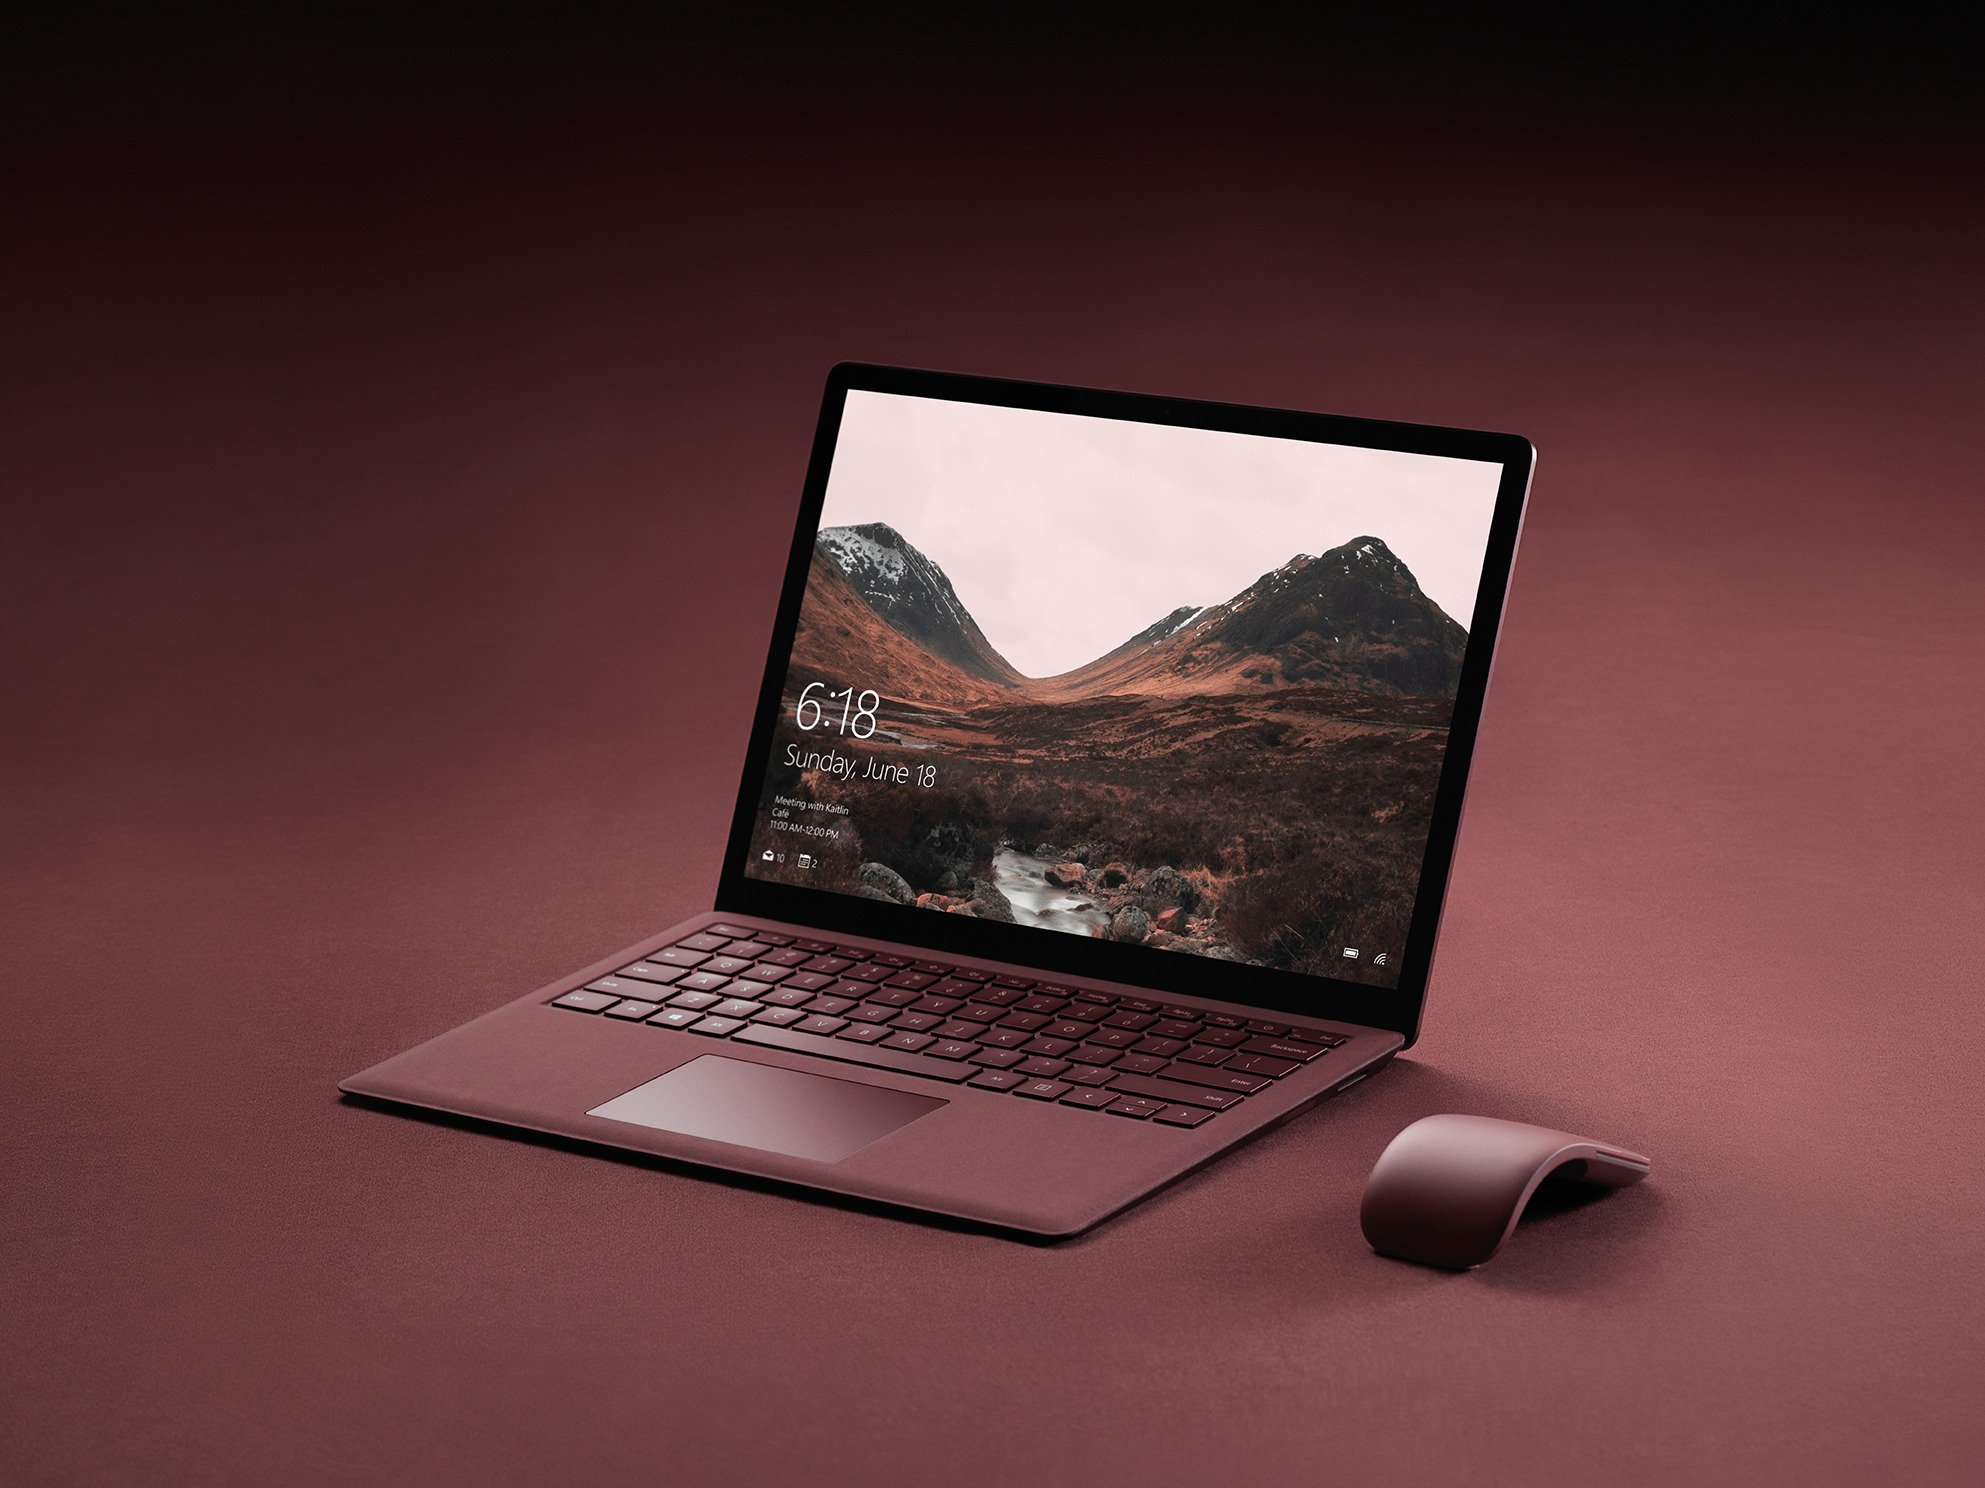 More Surface Laptop images leak ahead of launch 1